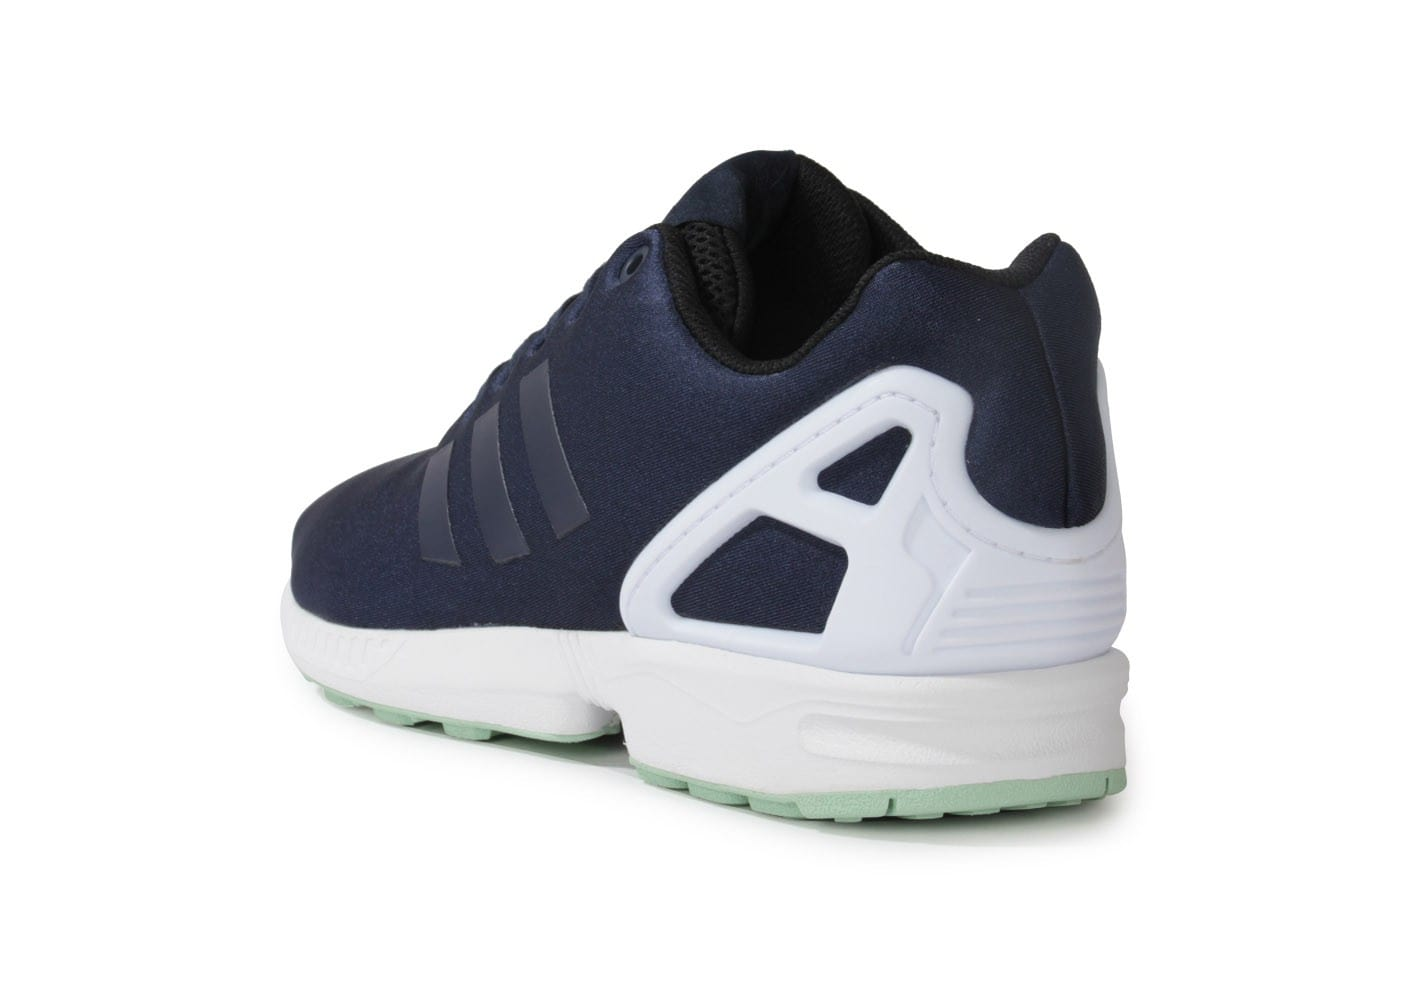 outlet store 18b7a 4bbc9 Chaussures Adidas Zx Flux